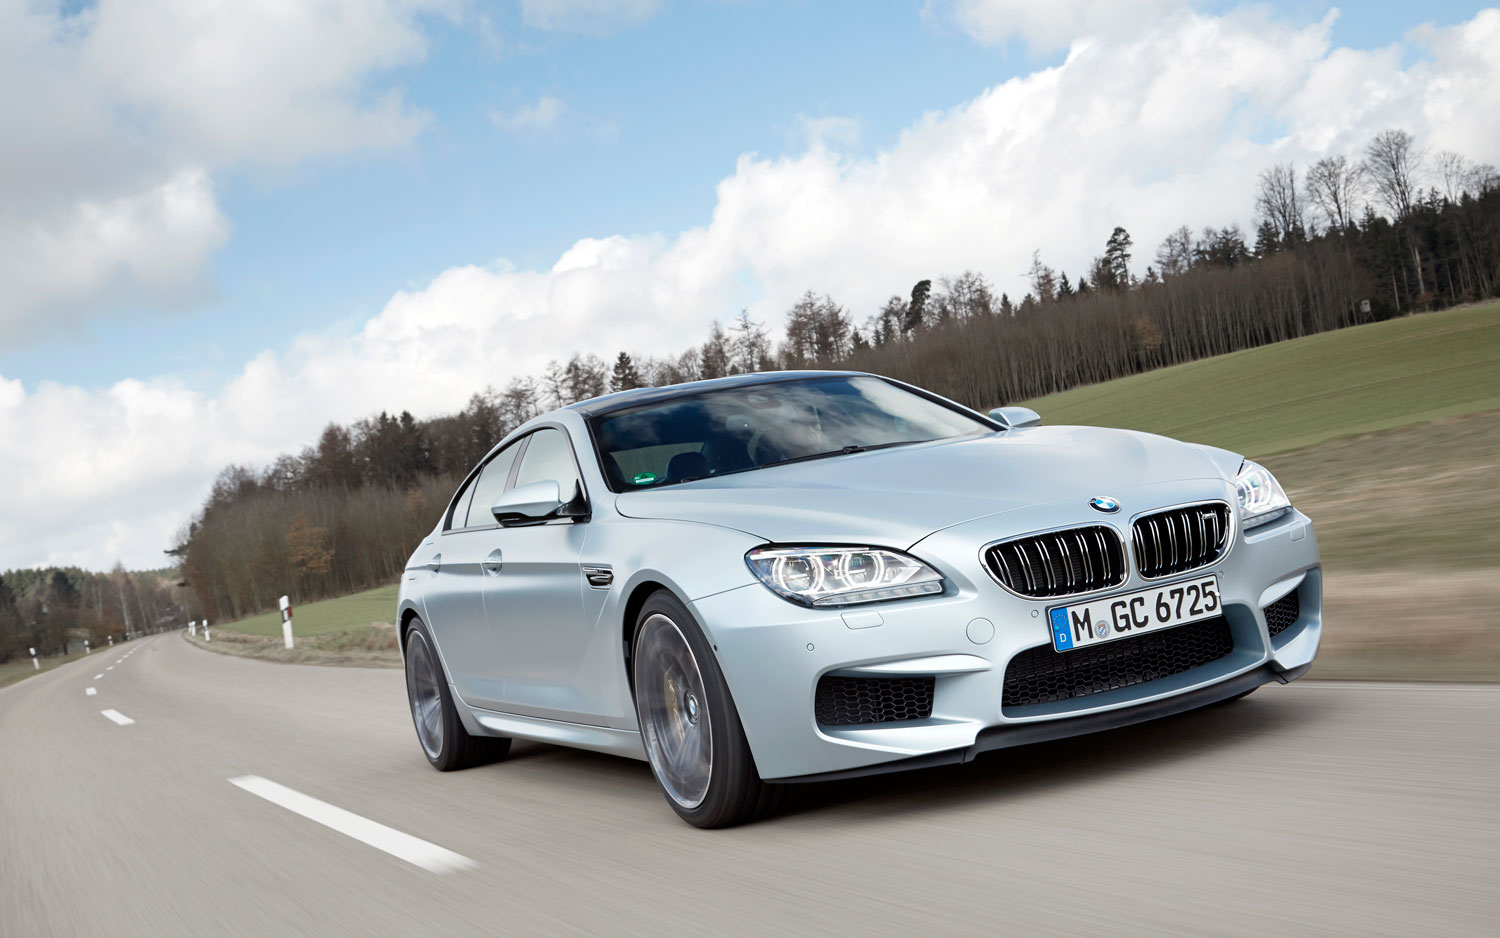 2014 Bmw M6 Gran Coupe First Drive Automobile Magazine